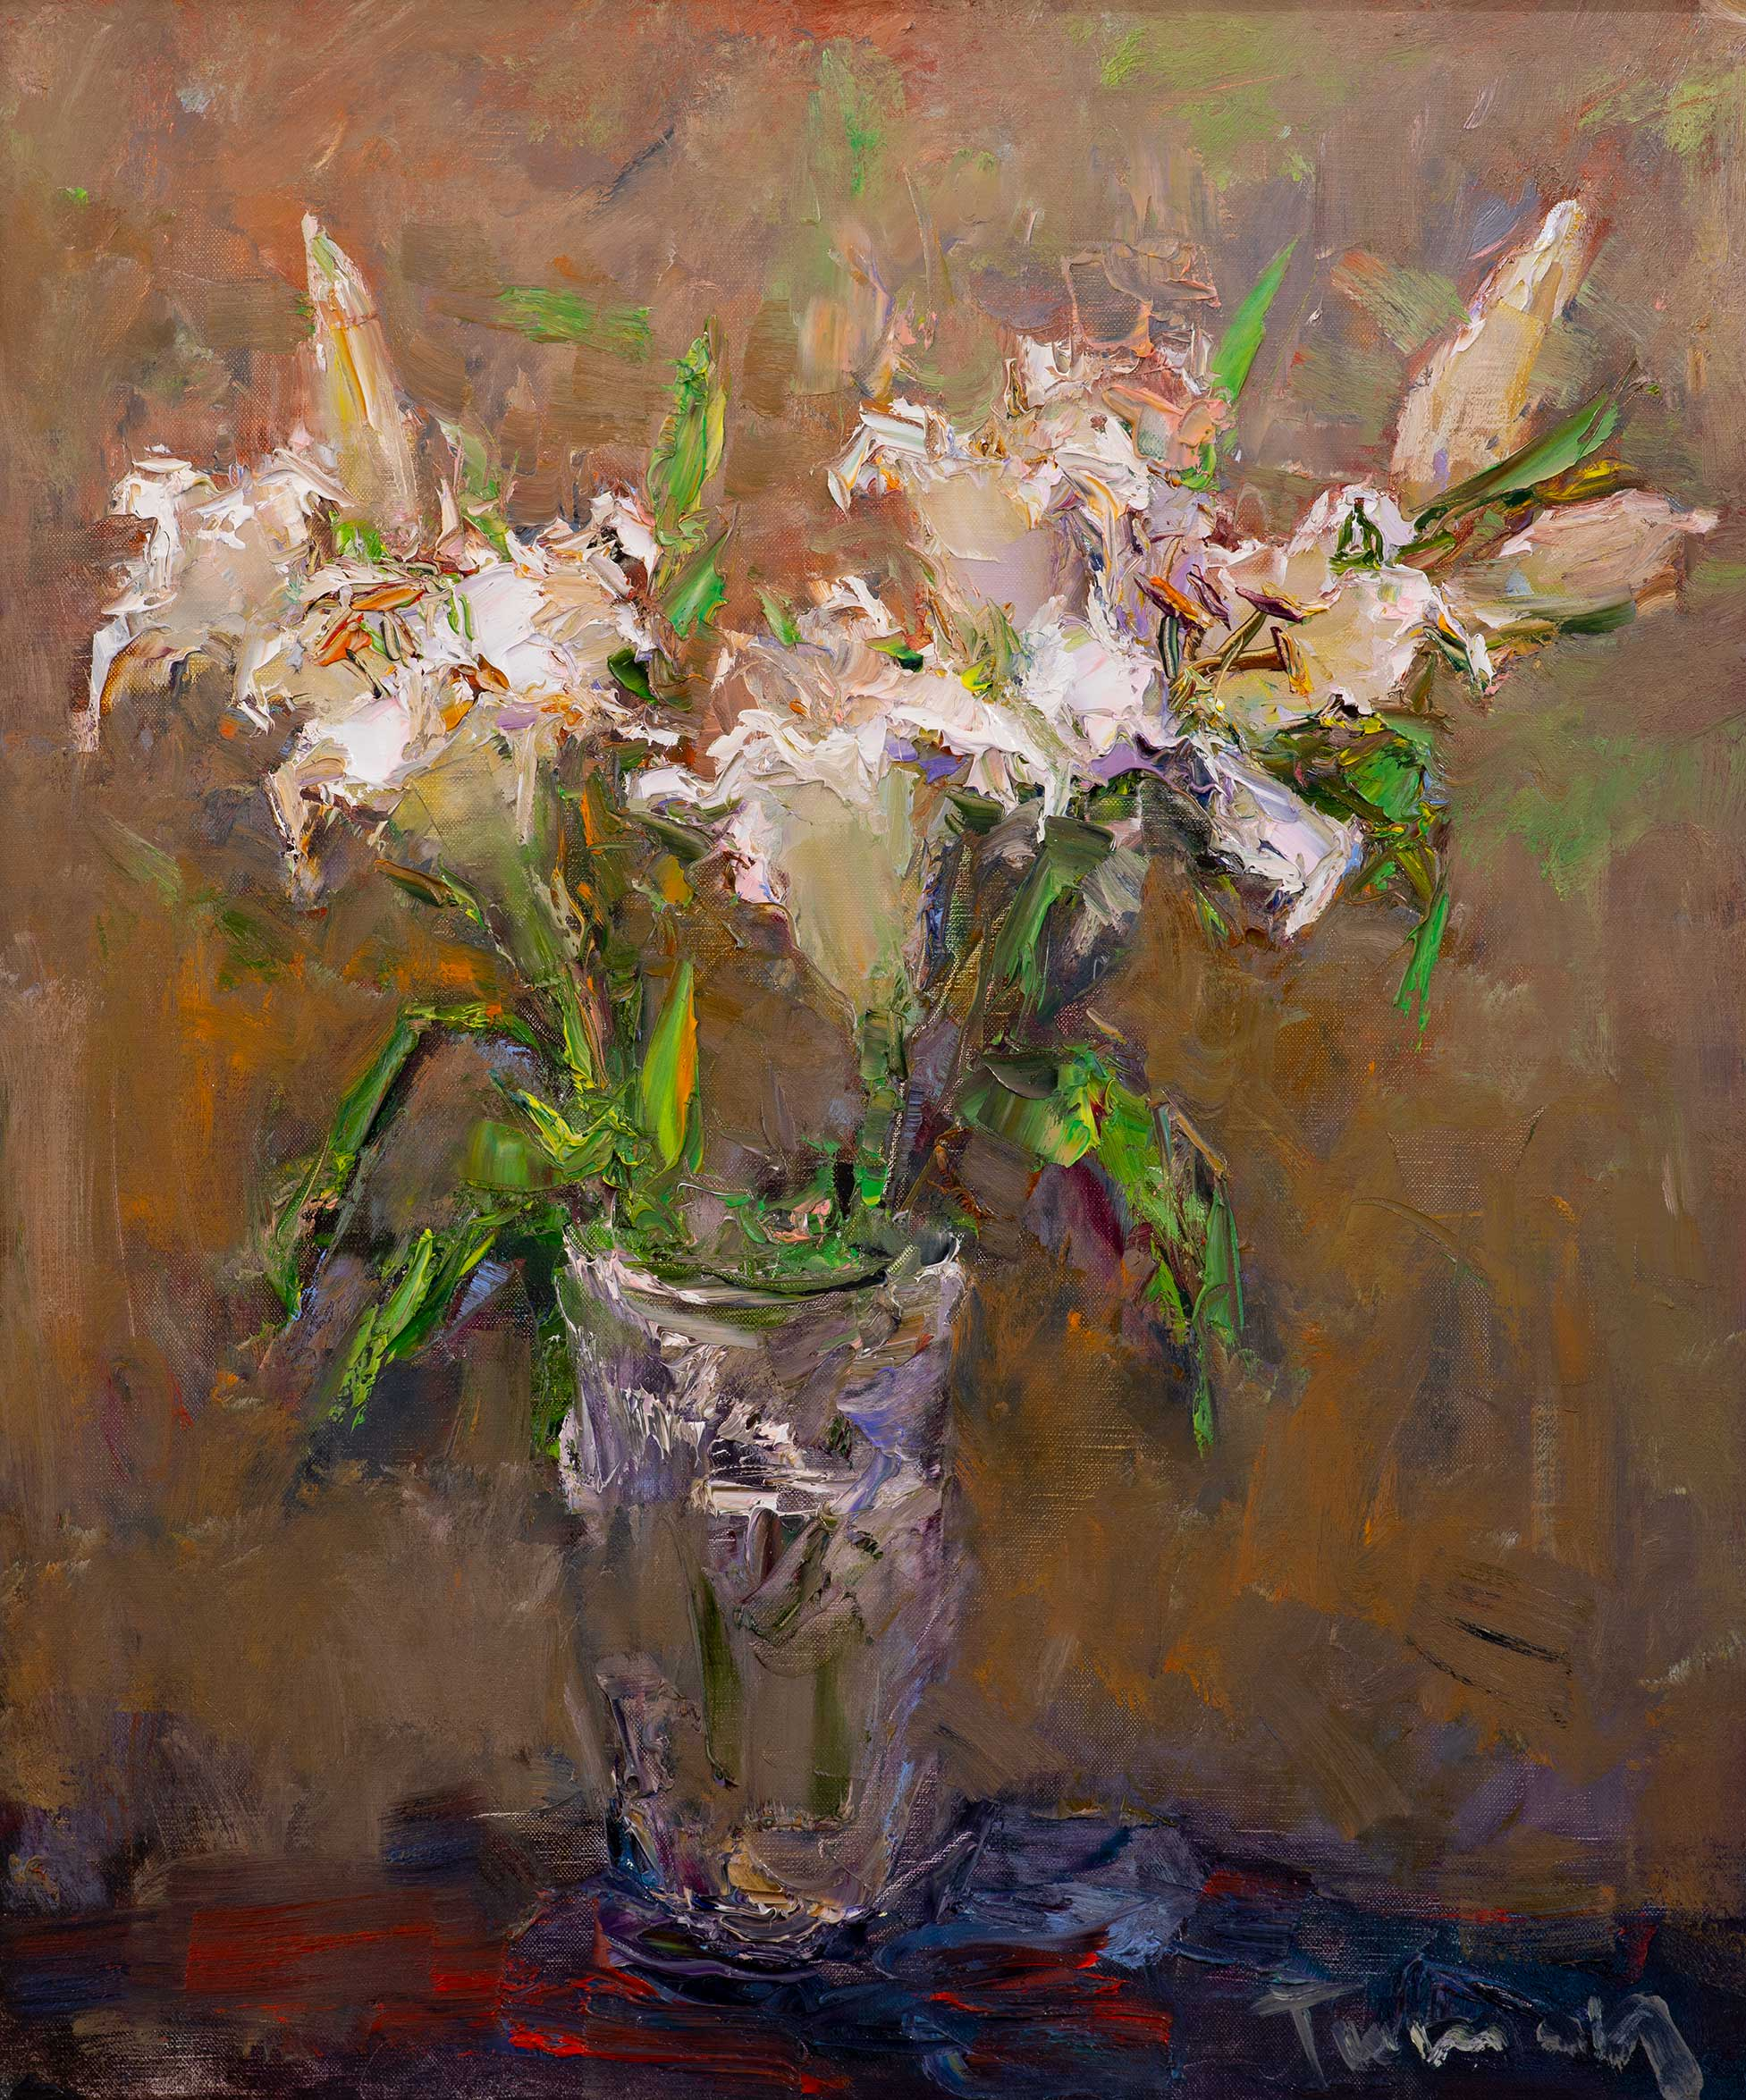 Lily, Tuman Zhumabaev, Buy the painting Oil